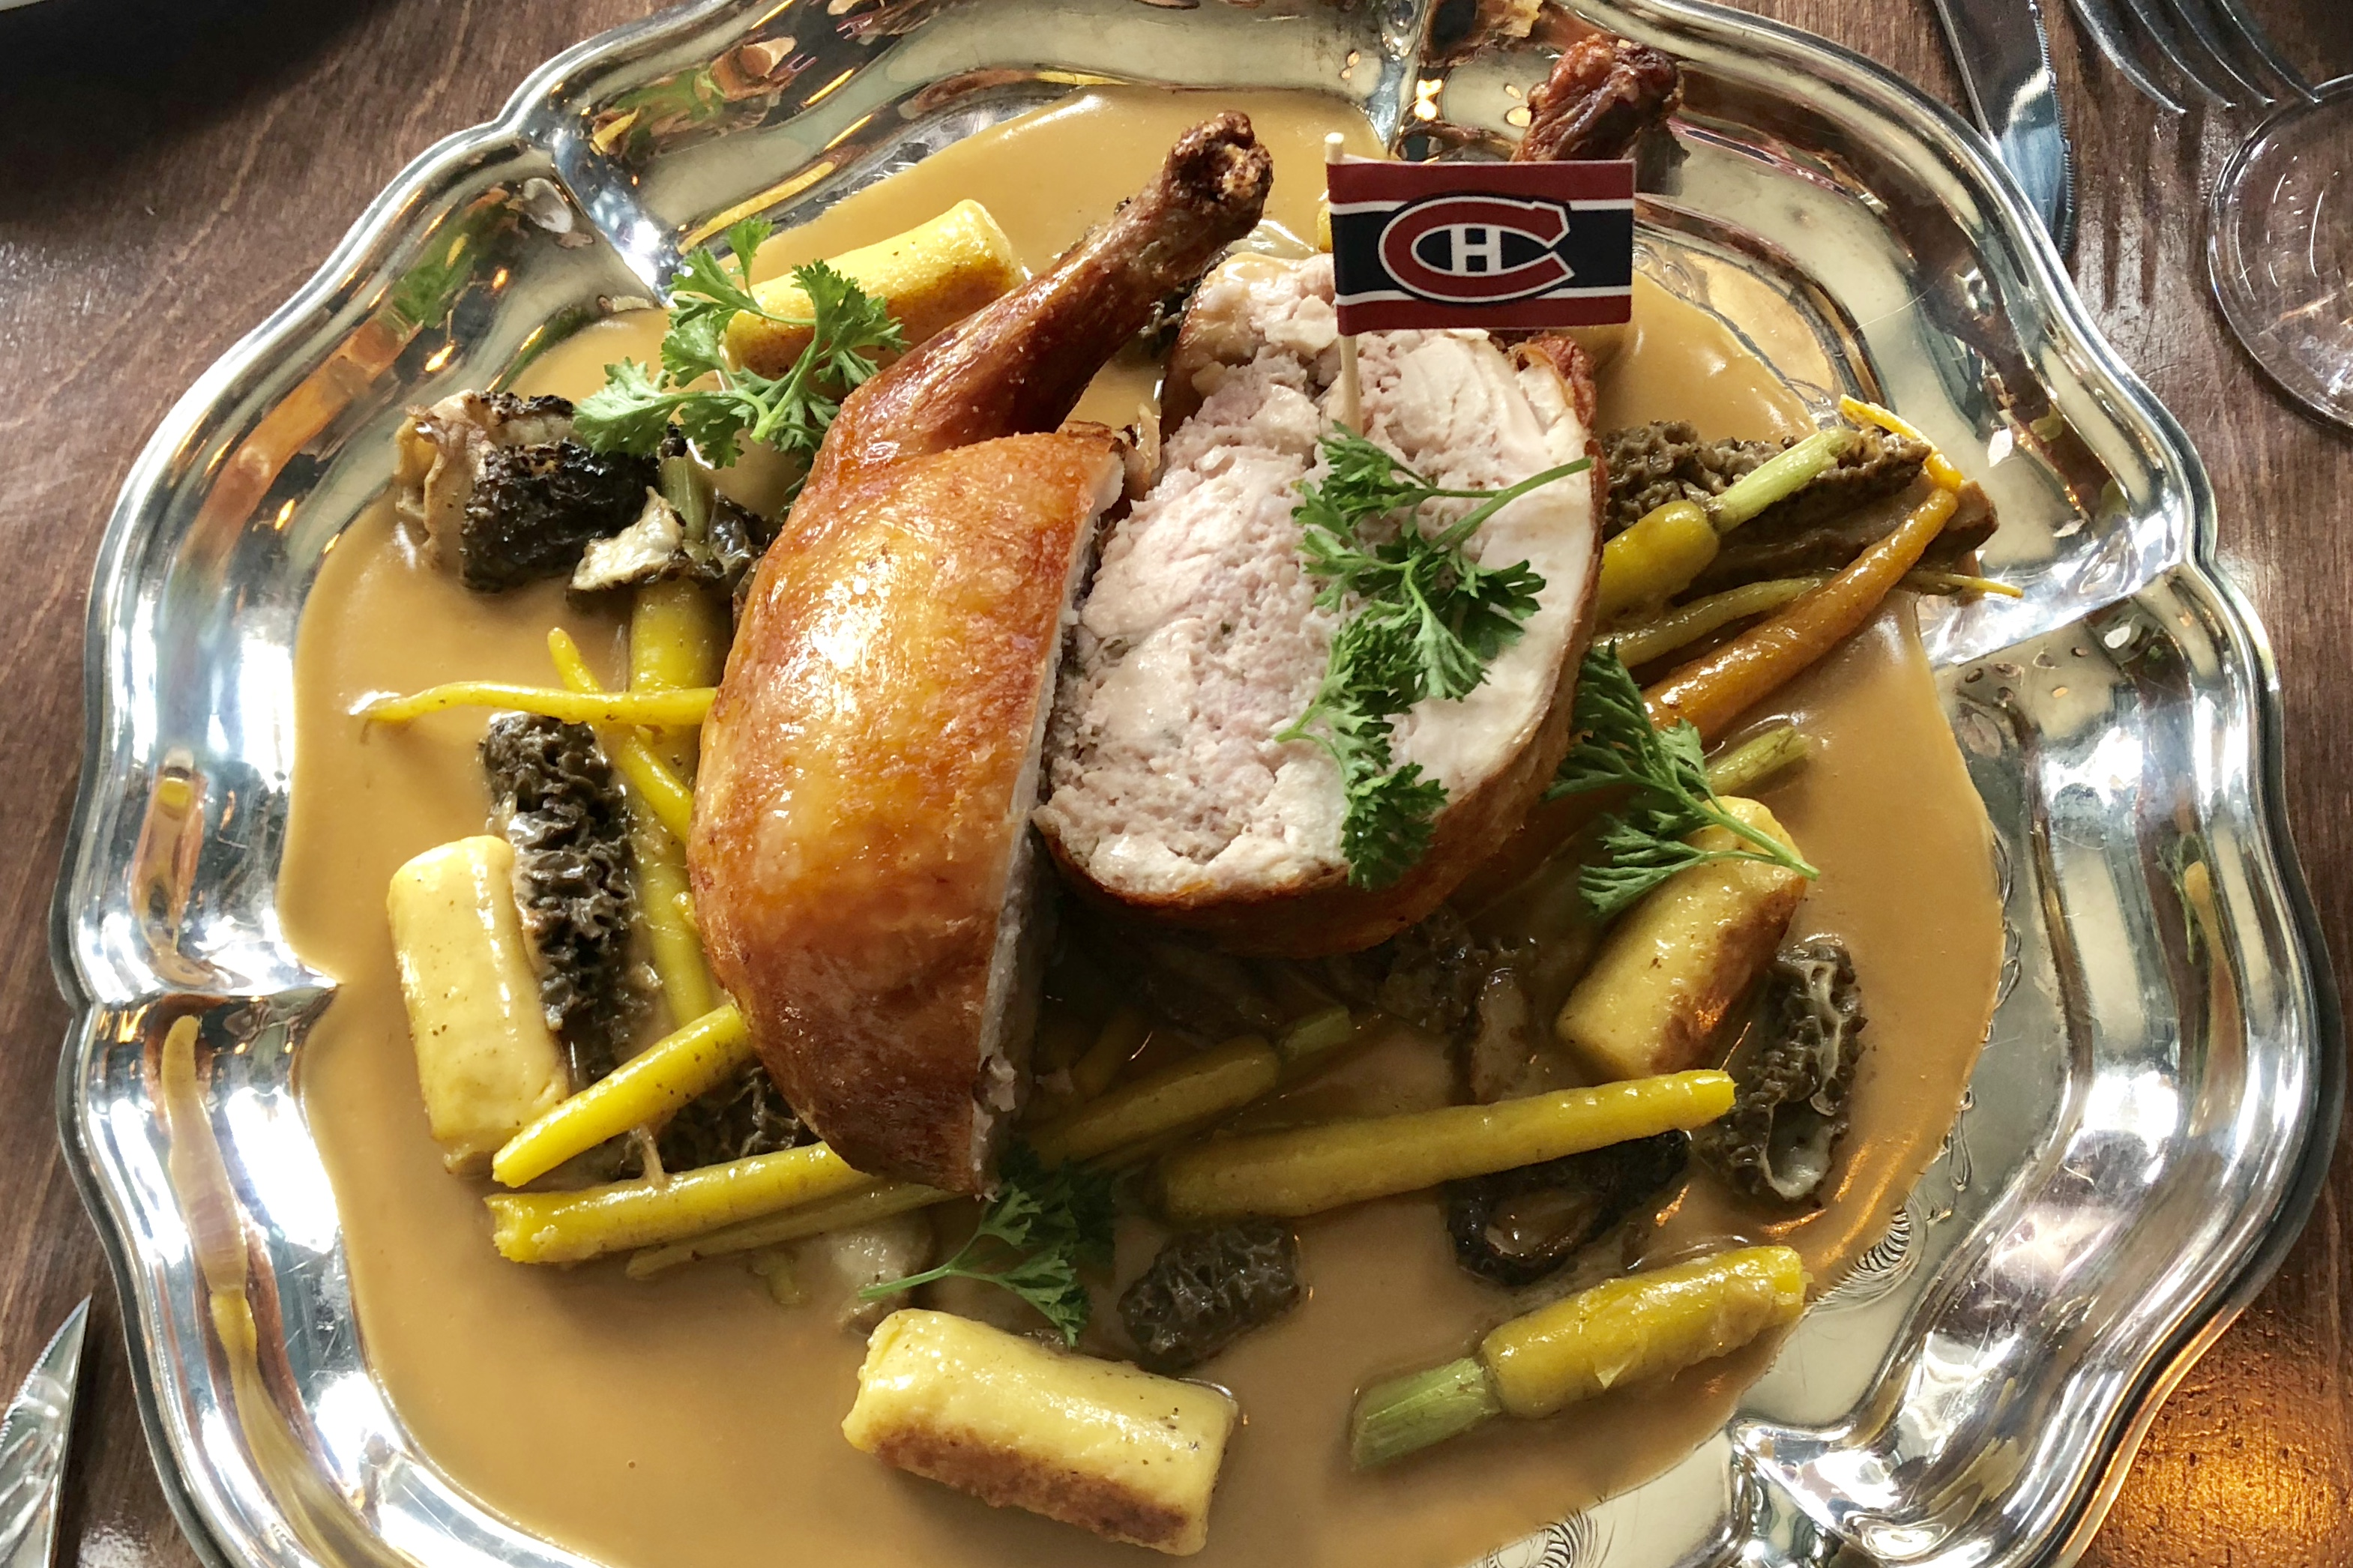 Cournouaille, stuffed Cornish hen with sweet bread, served with gnocchi and morels